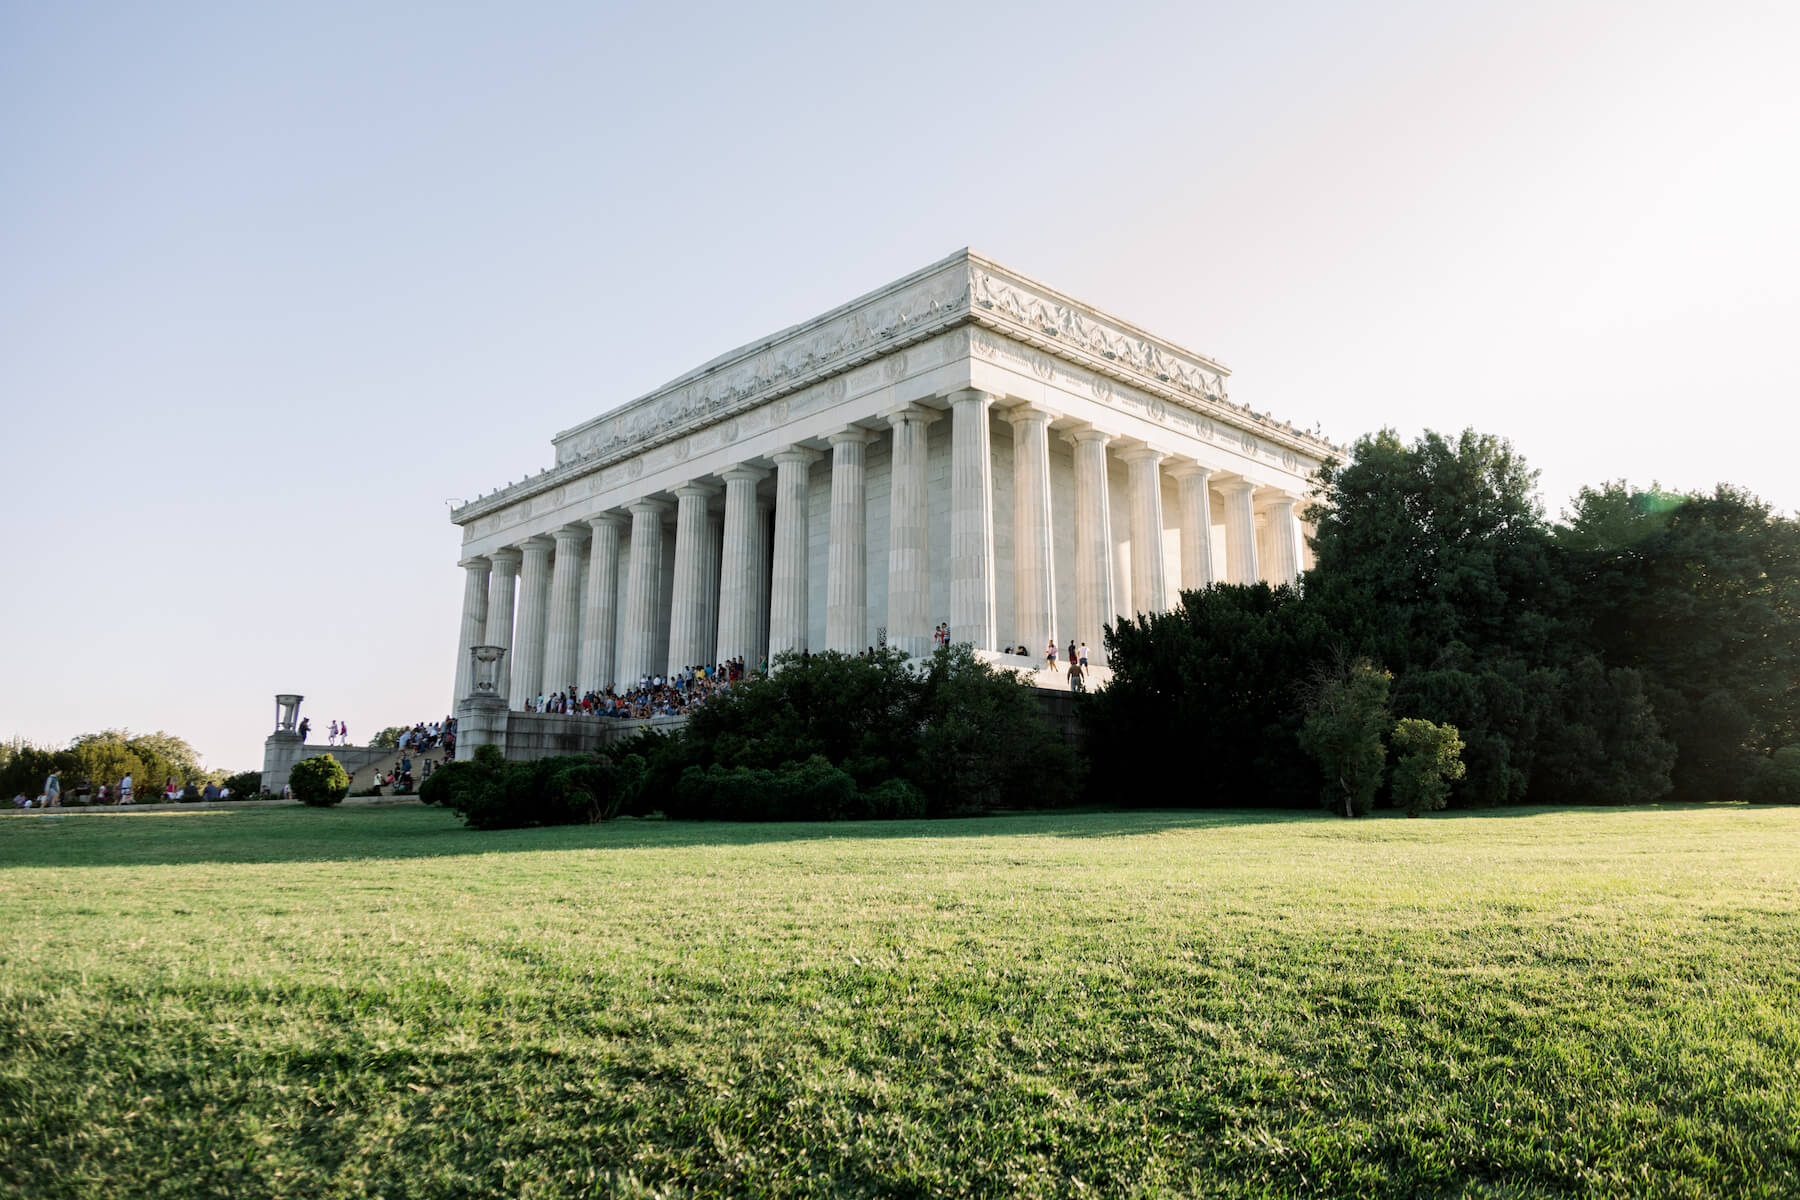 The Lincoln Memorial from the grass in Washington DC captured by Flytographer.